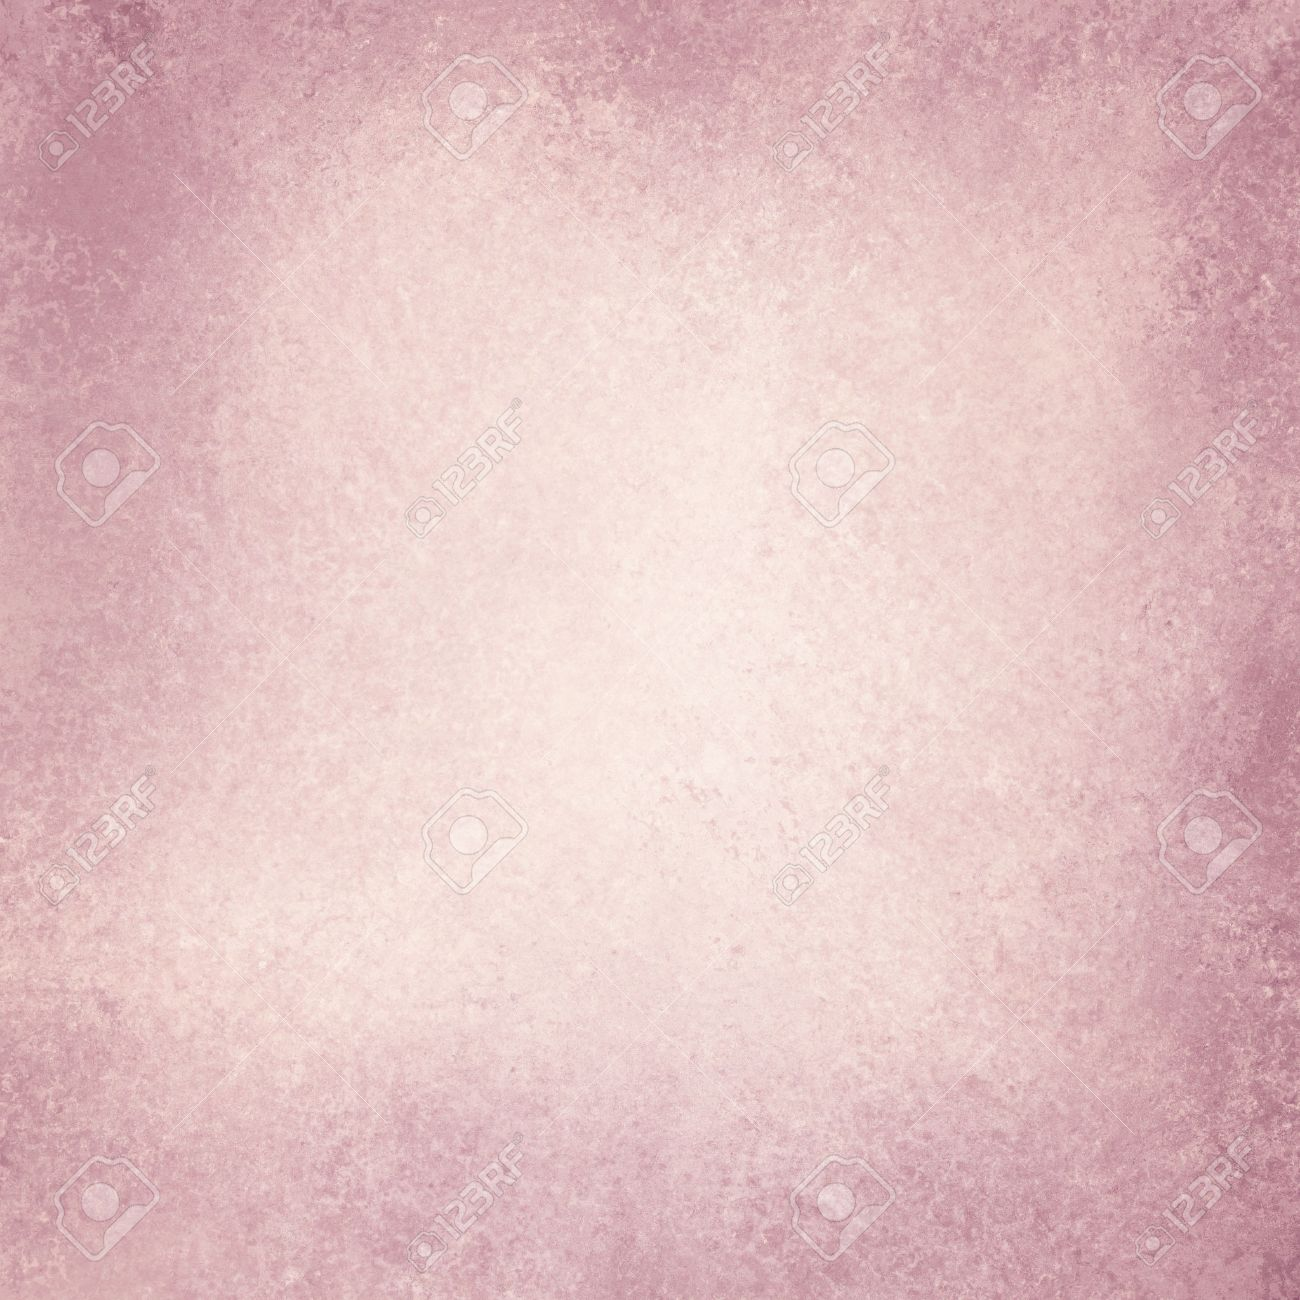 Old Pink Paper Background Off White Vintage With Burnt Edges Or Grunge Border Design